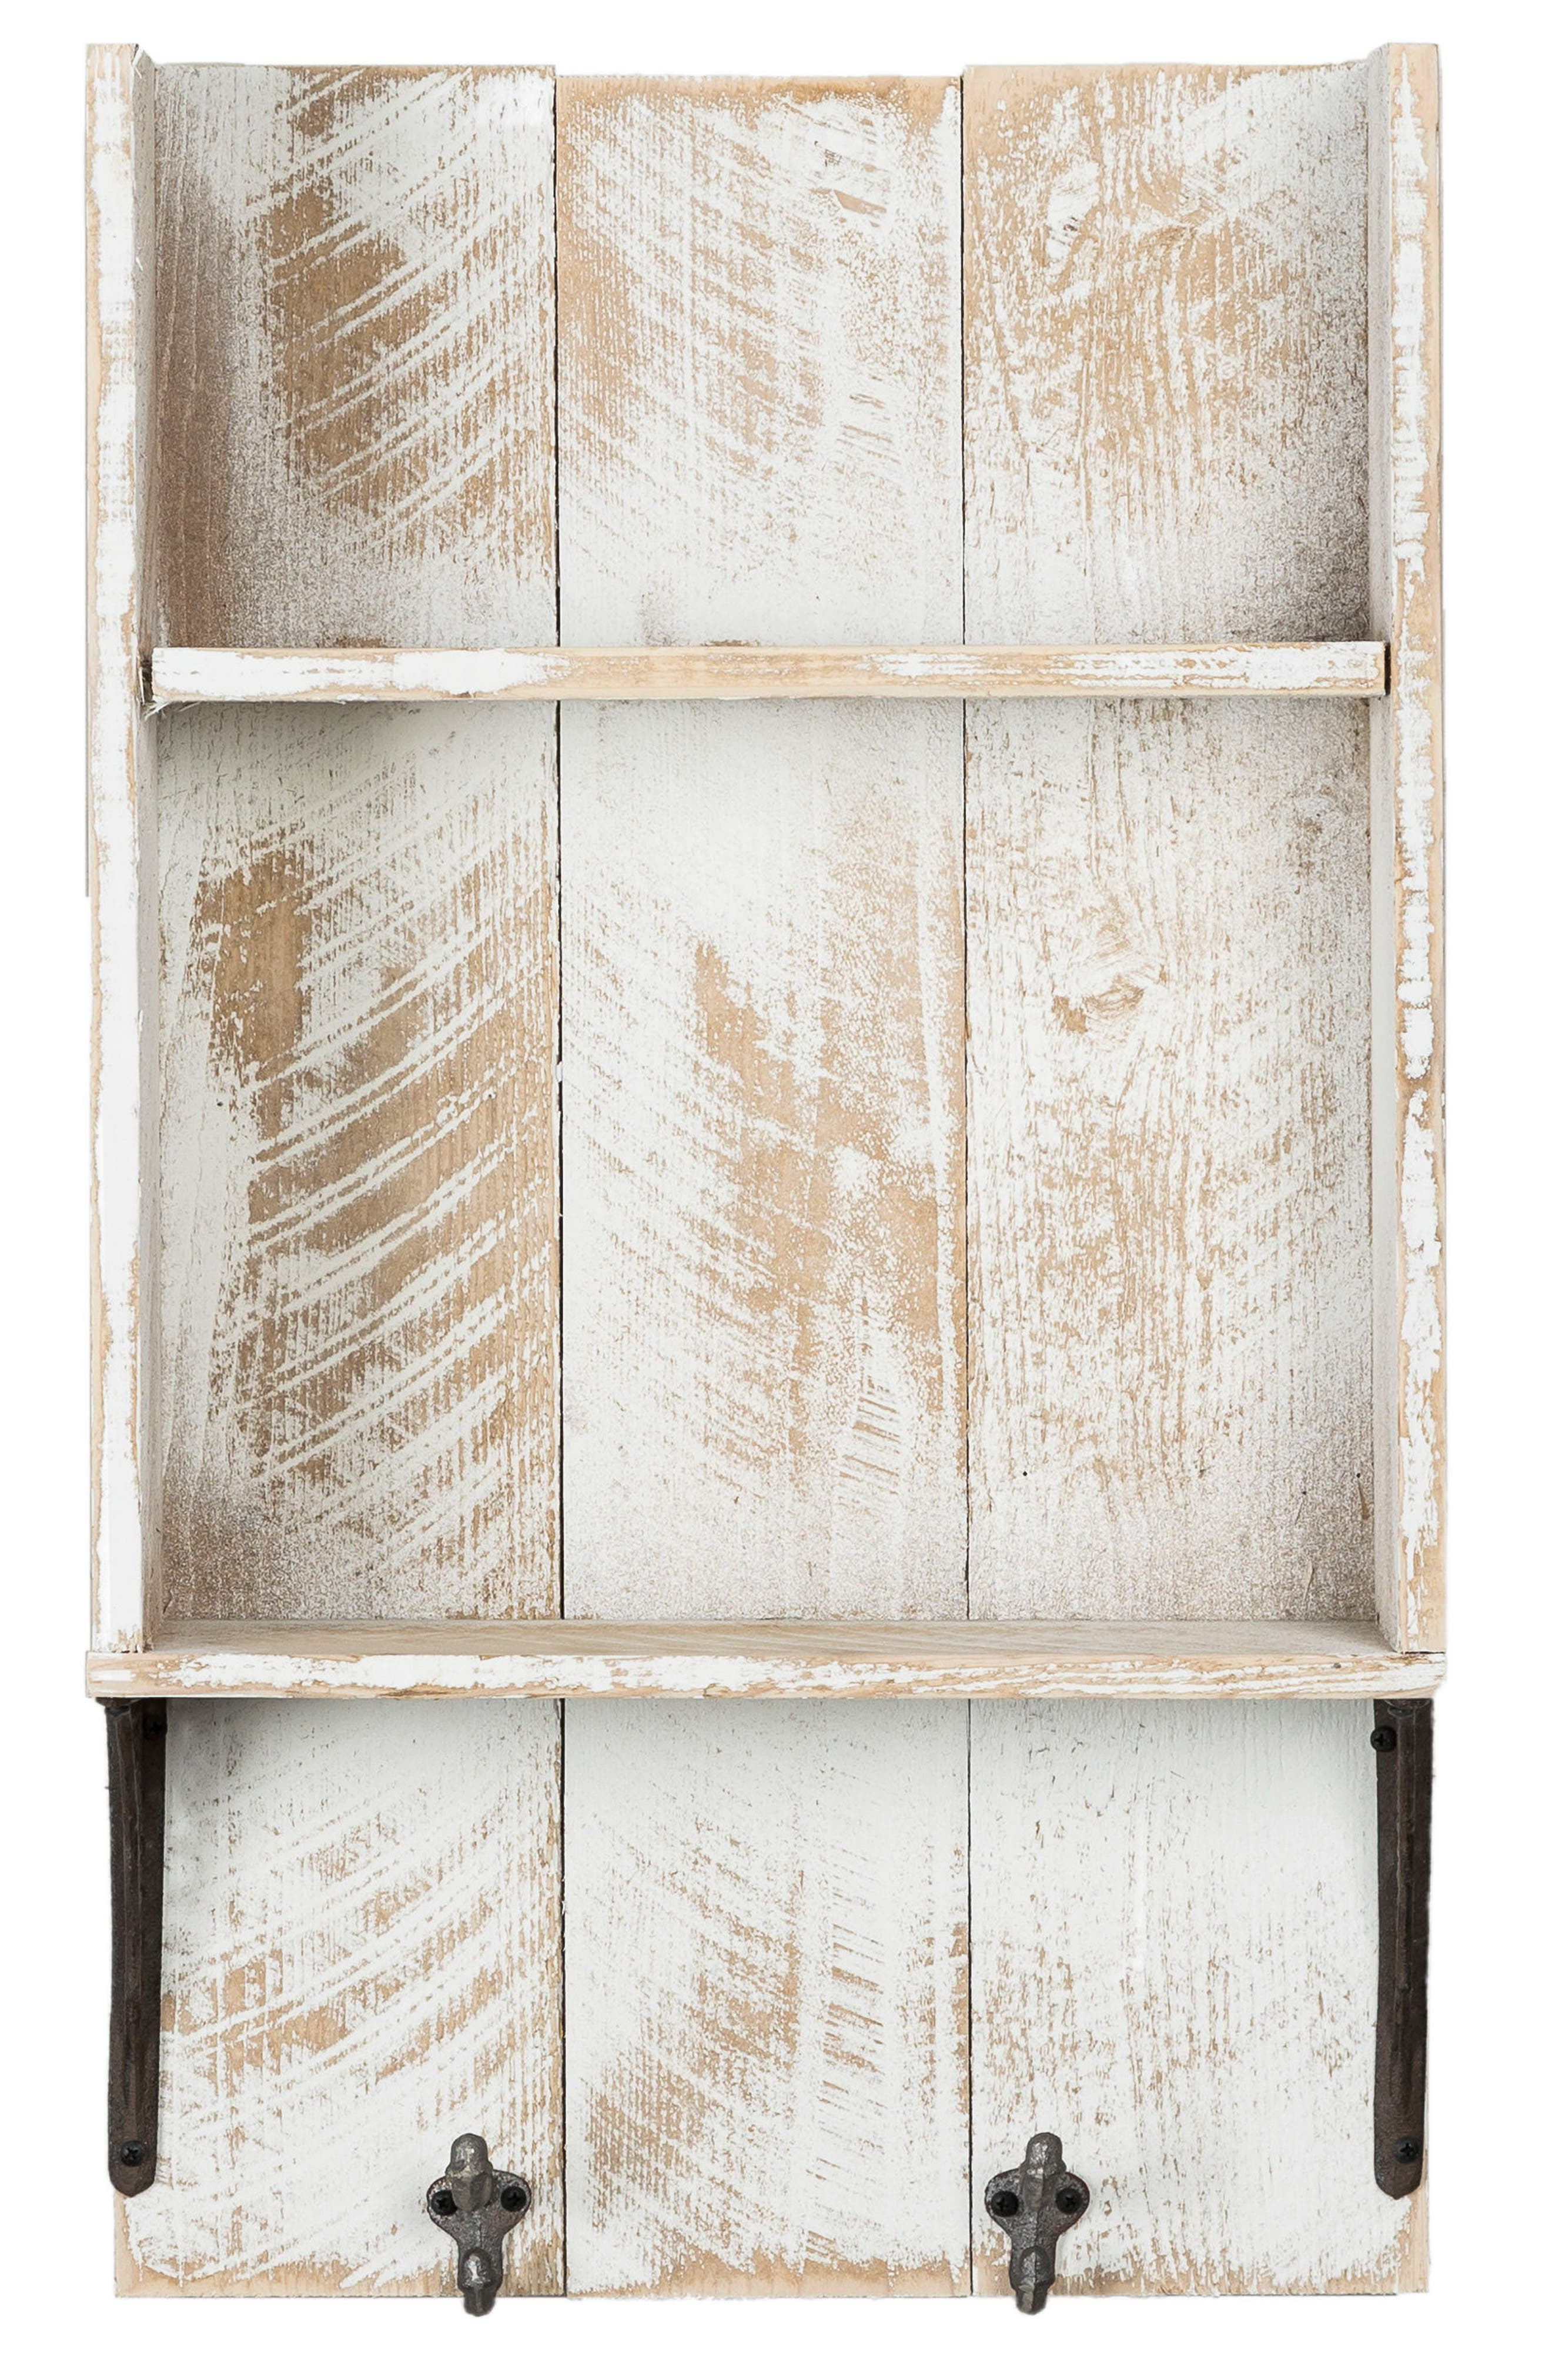 Reclaimed Wood Shelf with Hooks,                             Main thumbnail 1, color,                             White